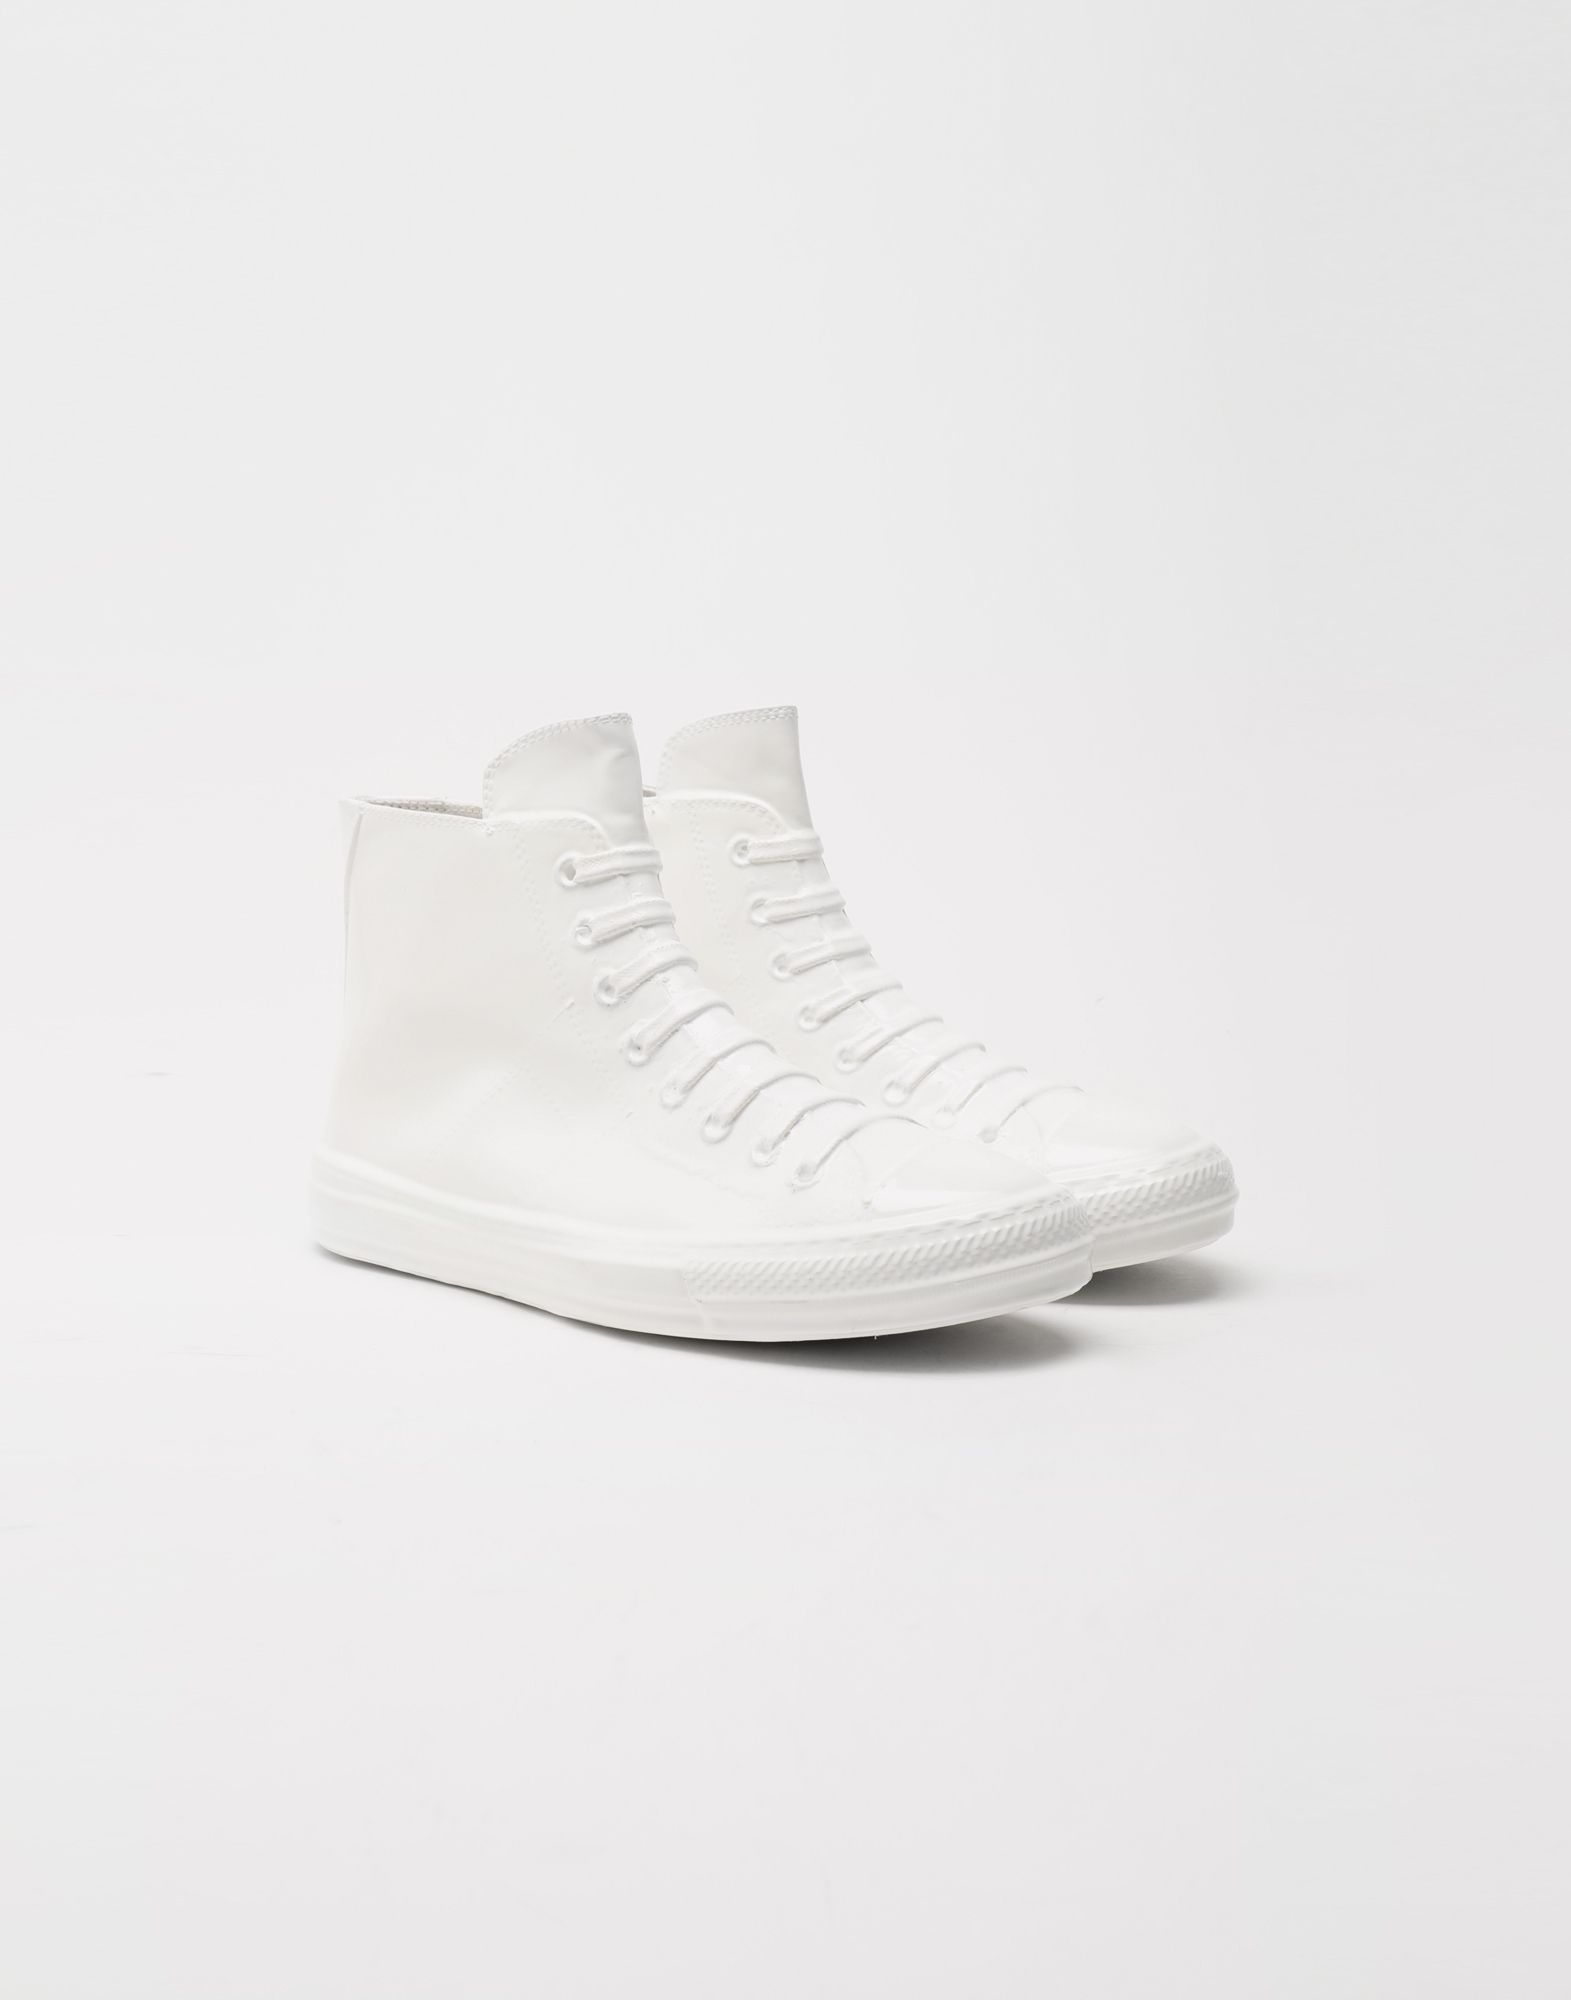 MAISON MARGIELA Plastic casing high-top sneakers Sneakers Man r